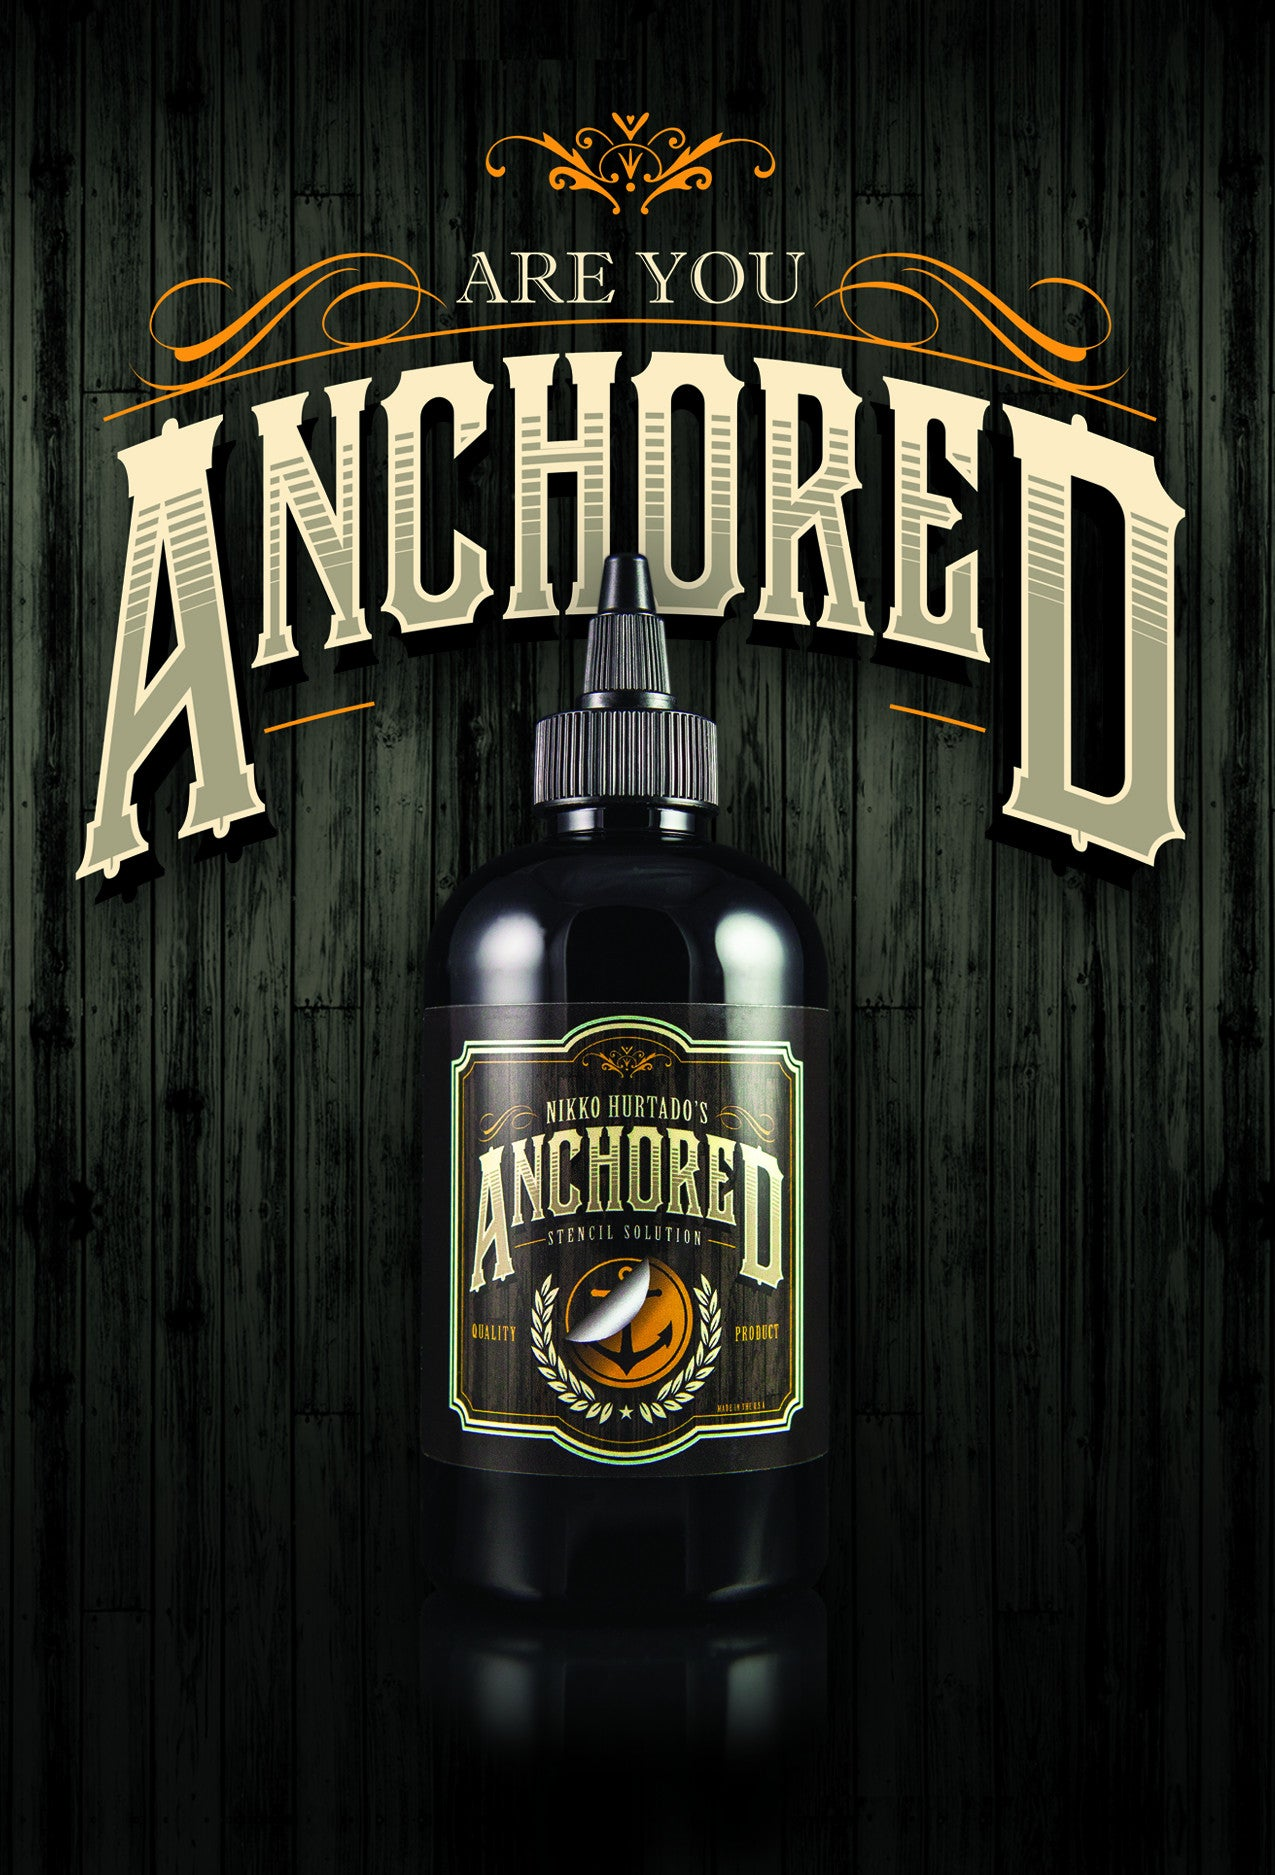 Anchored Stencil Solution (Single Bottle)